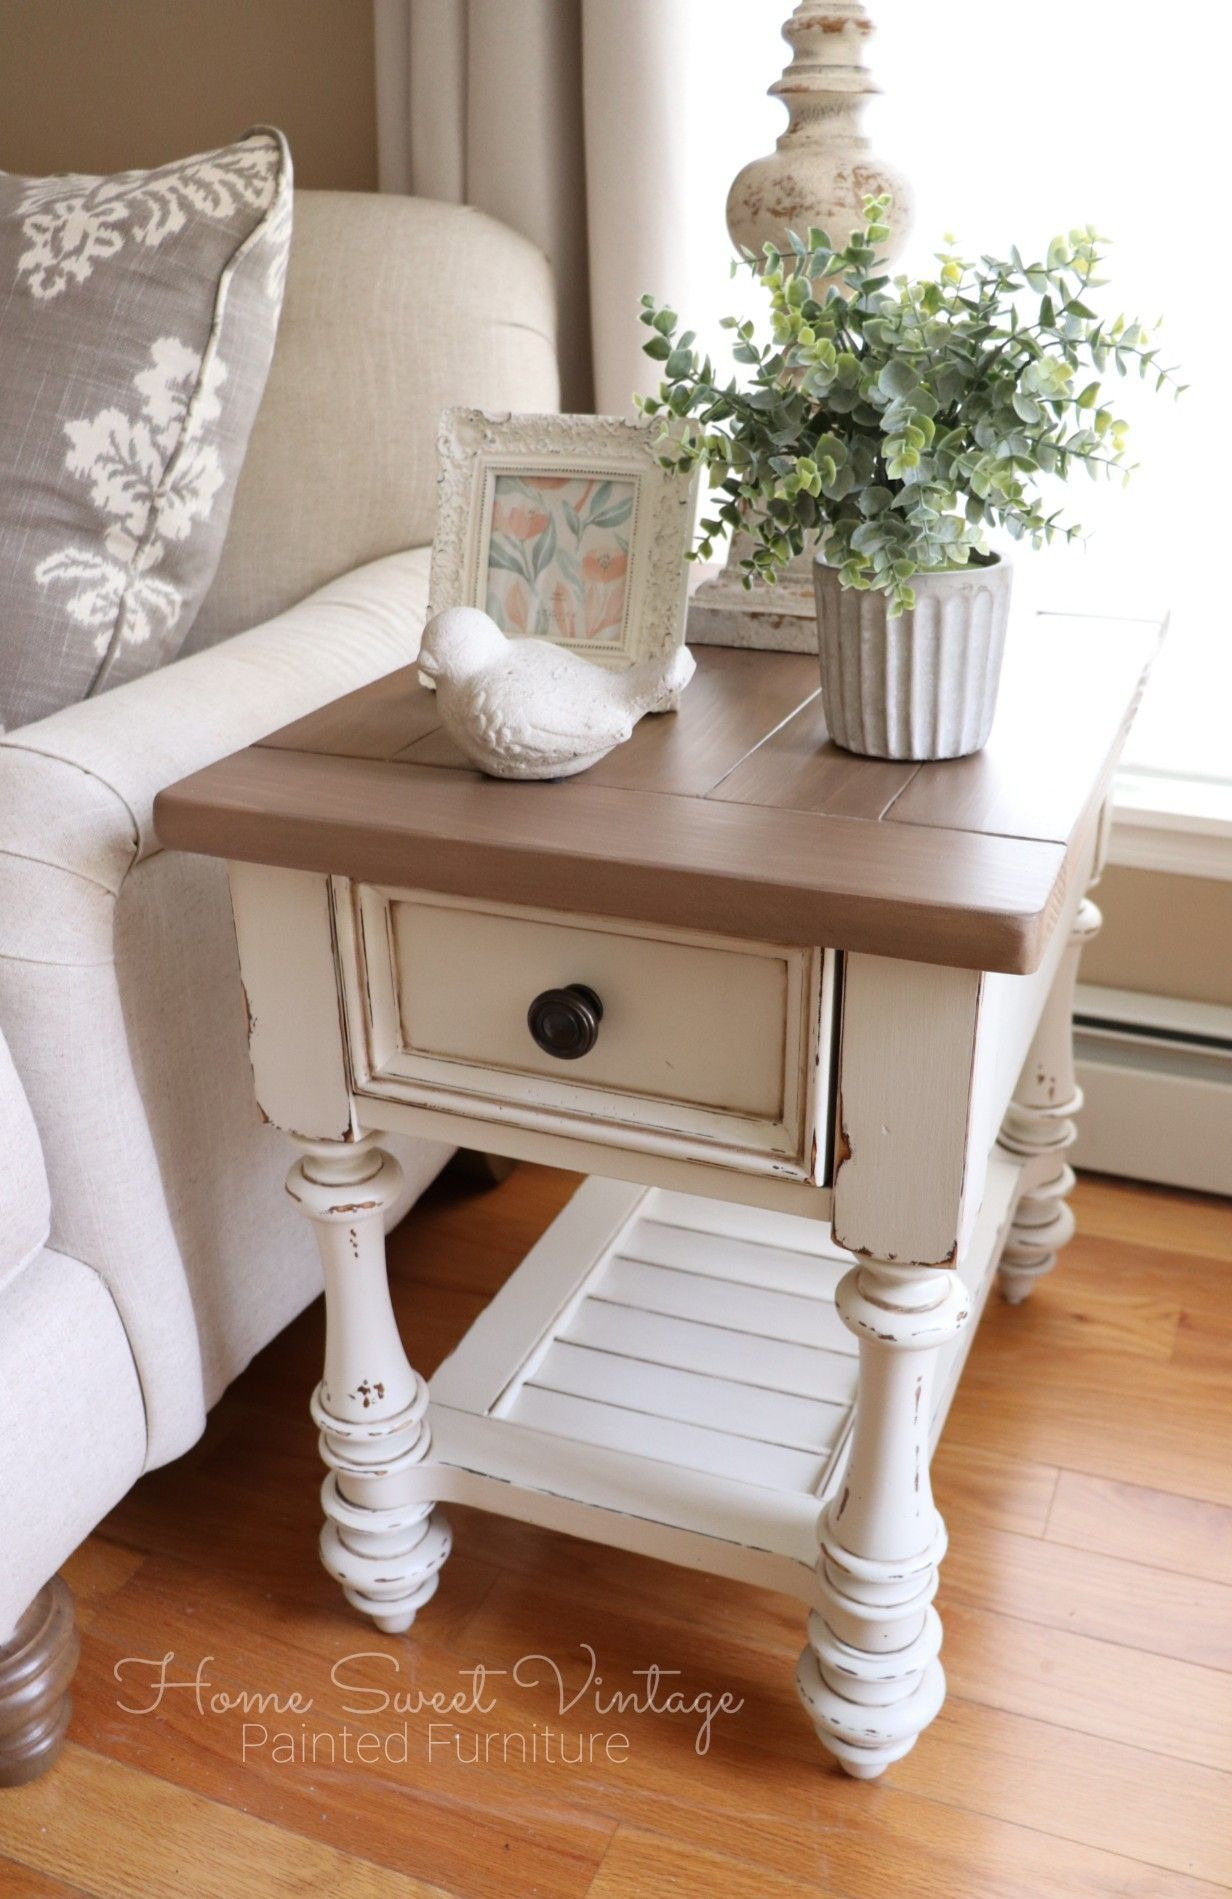 Farmhouse End Table By Home Sweet Vintage Painted Furniture